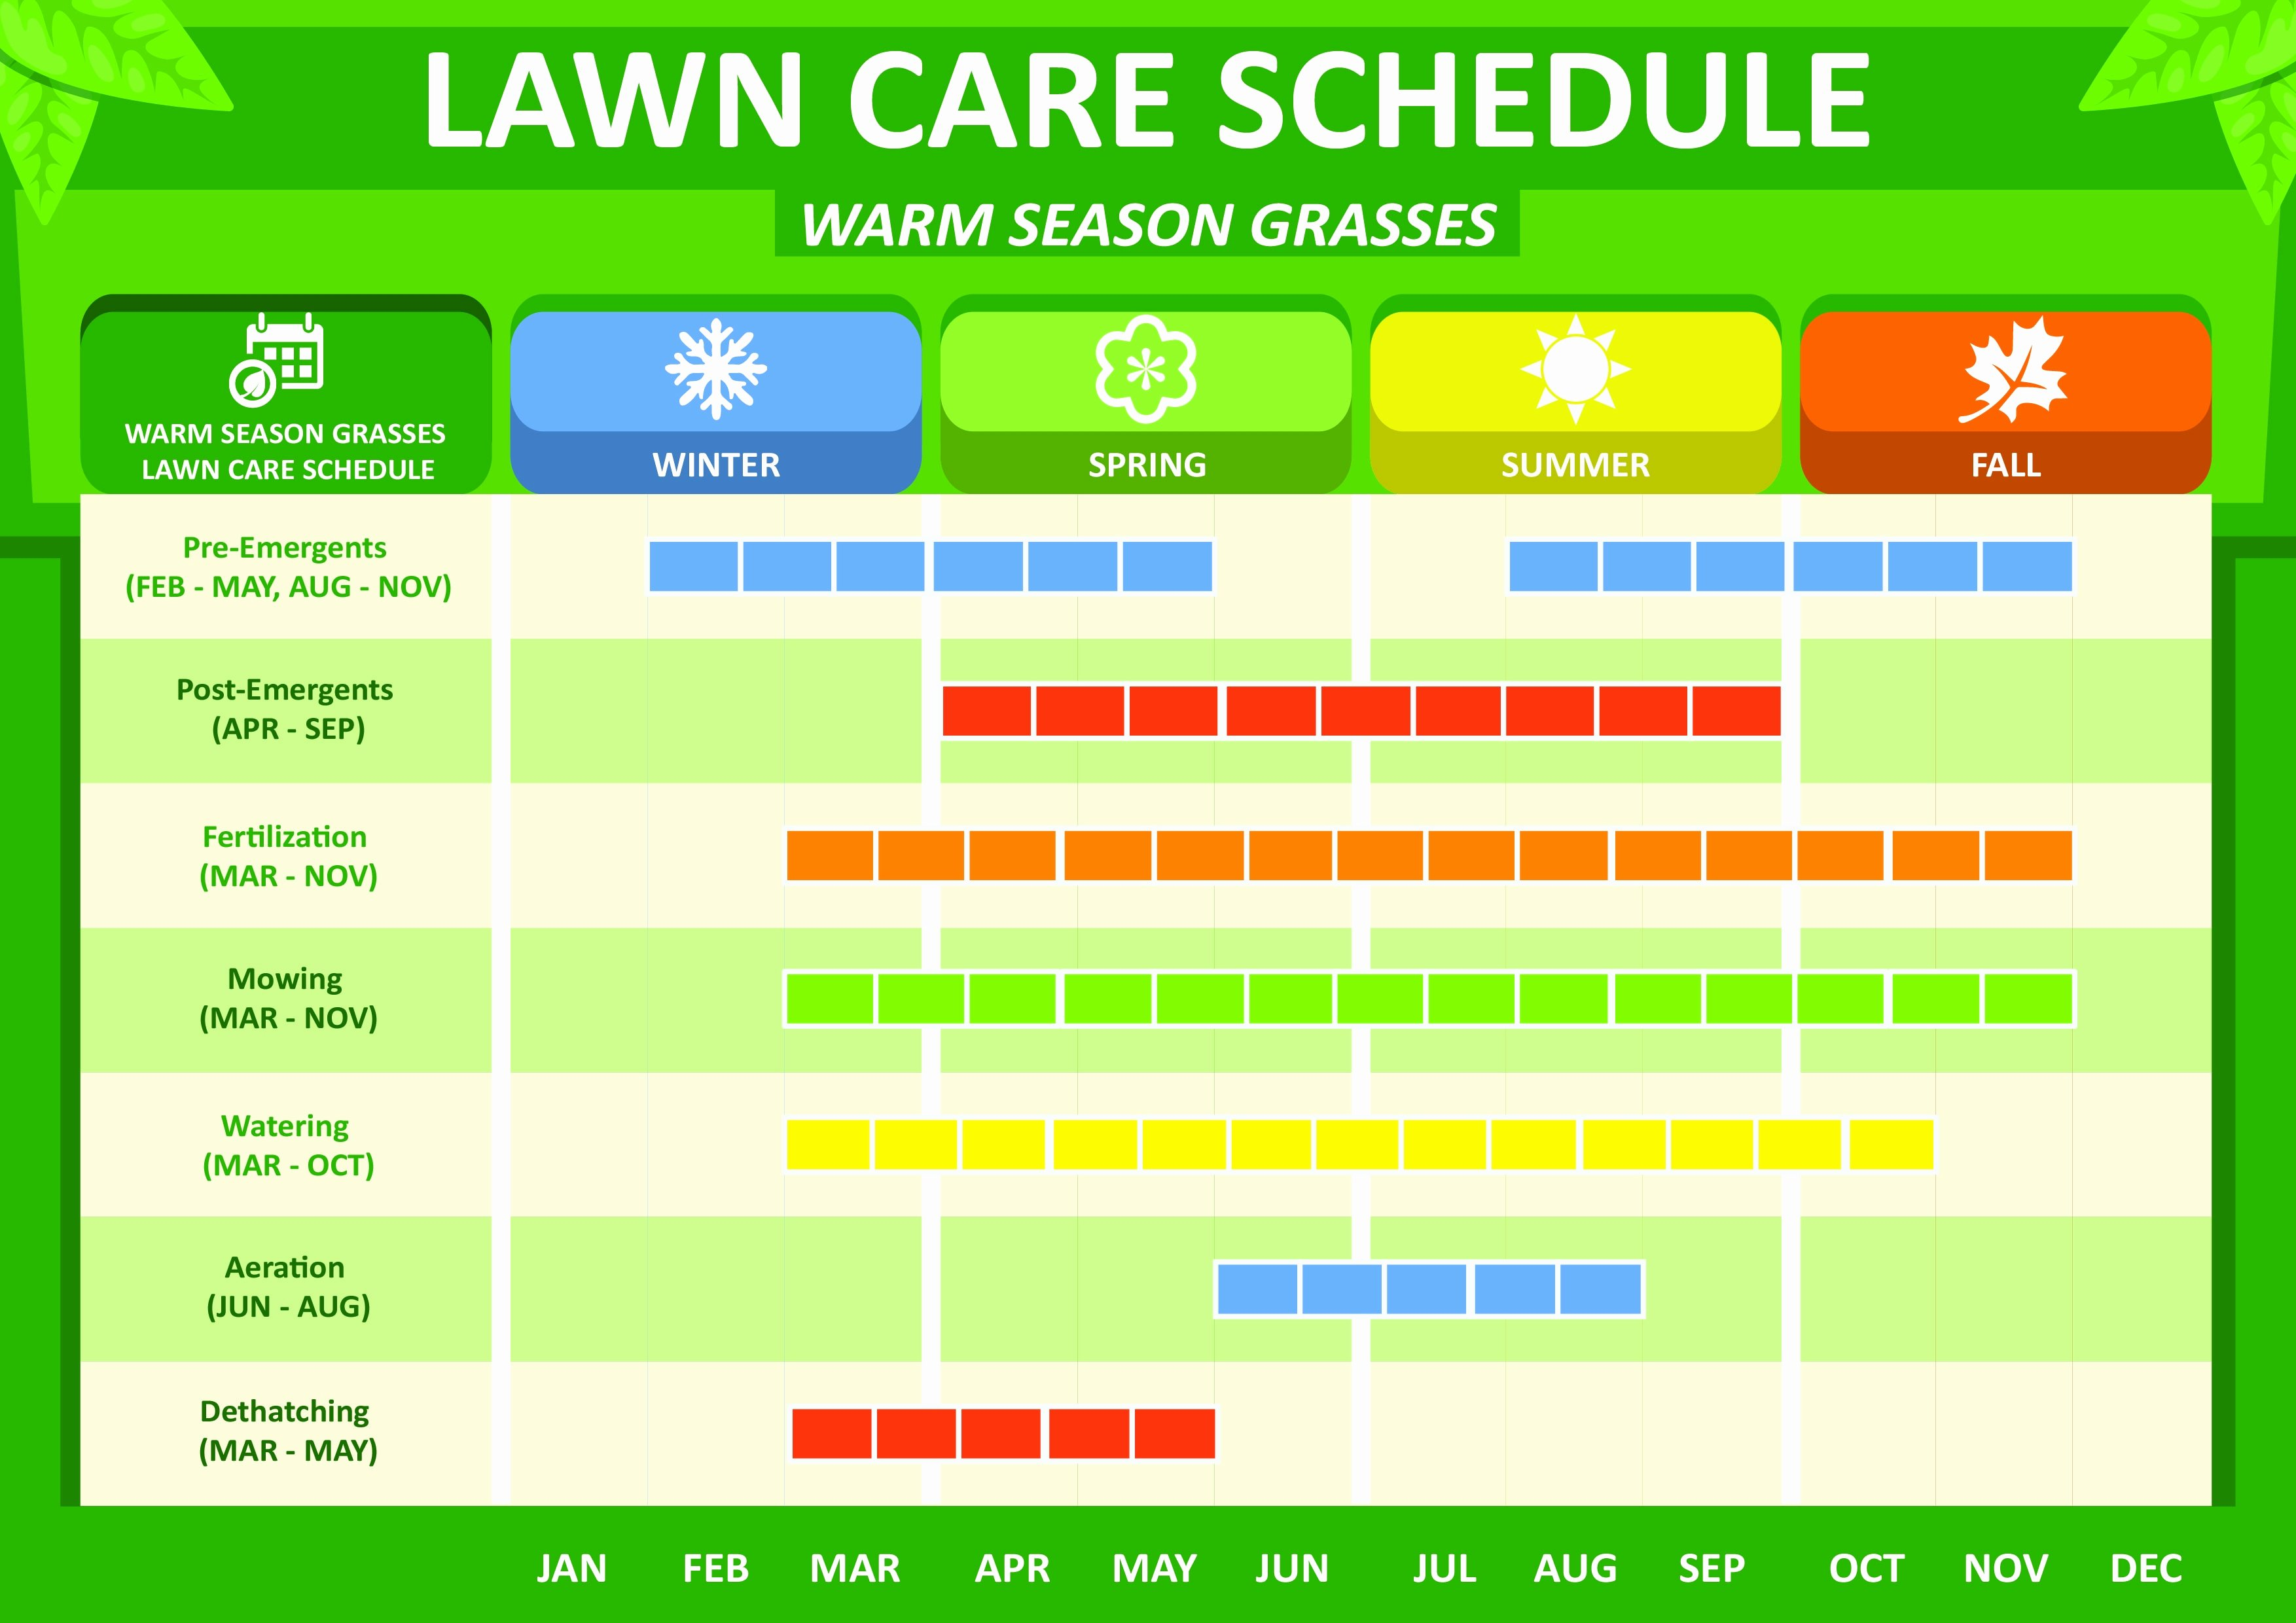 Lawn Maintenance Schedule Template Unique Diy Lawn Care Advice with Professional Lawn Care Products